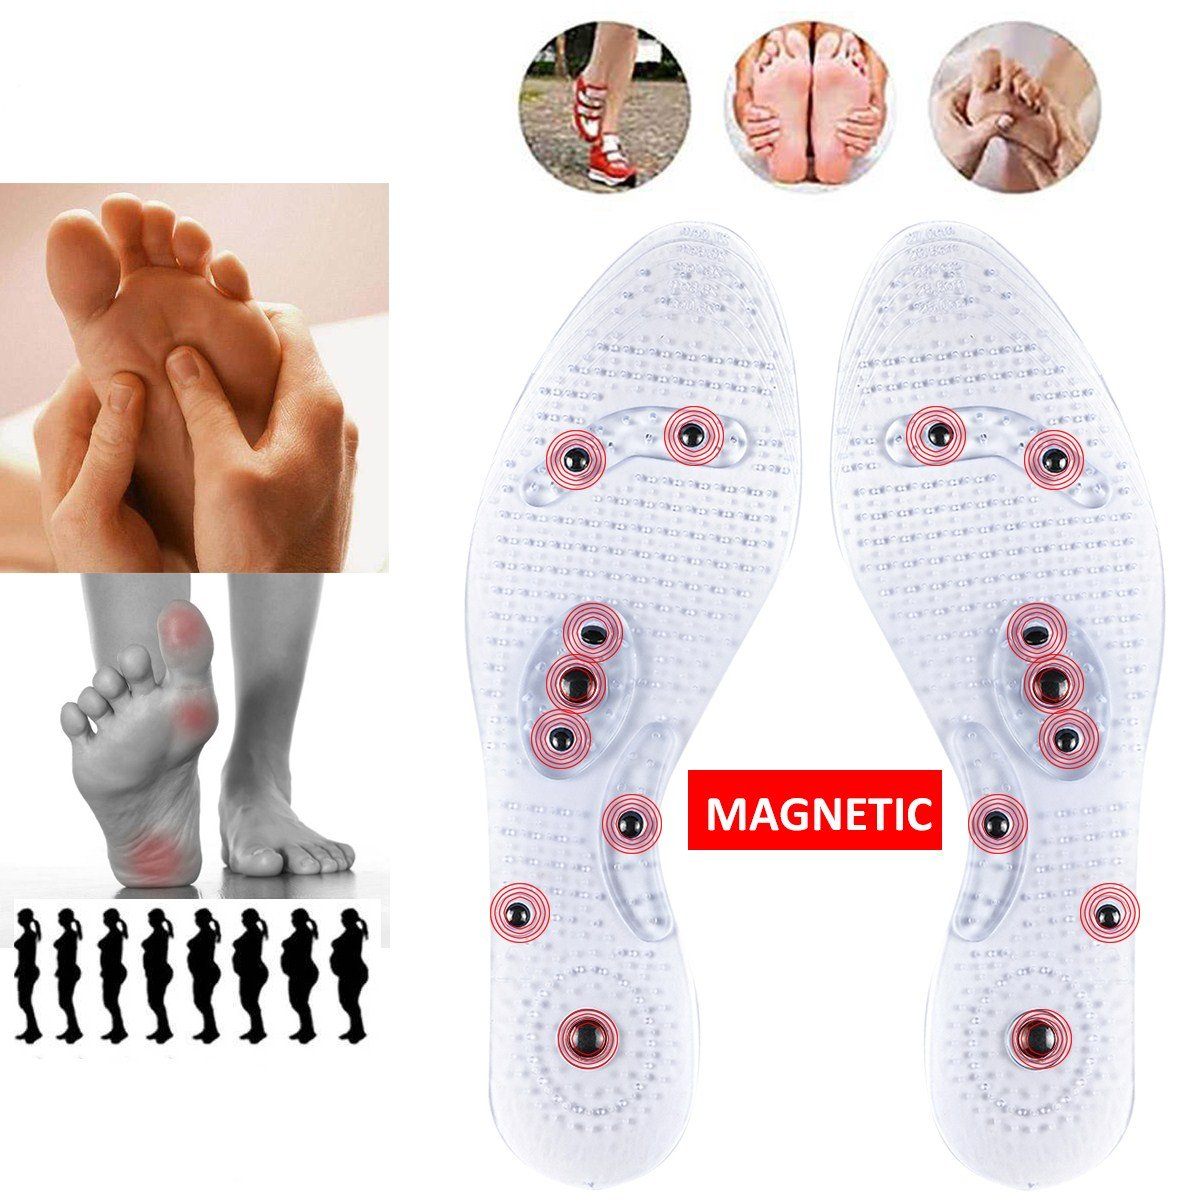 Acupressure Magnetic Massage Insole Elastomer Shock Absorption Pain Relief Foot Therapy Silicone Pads